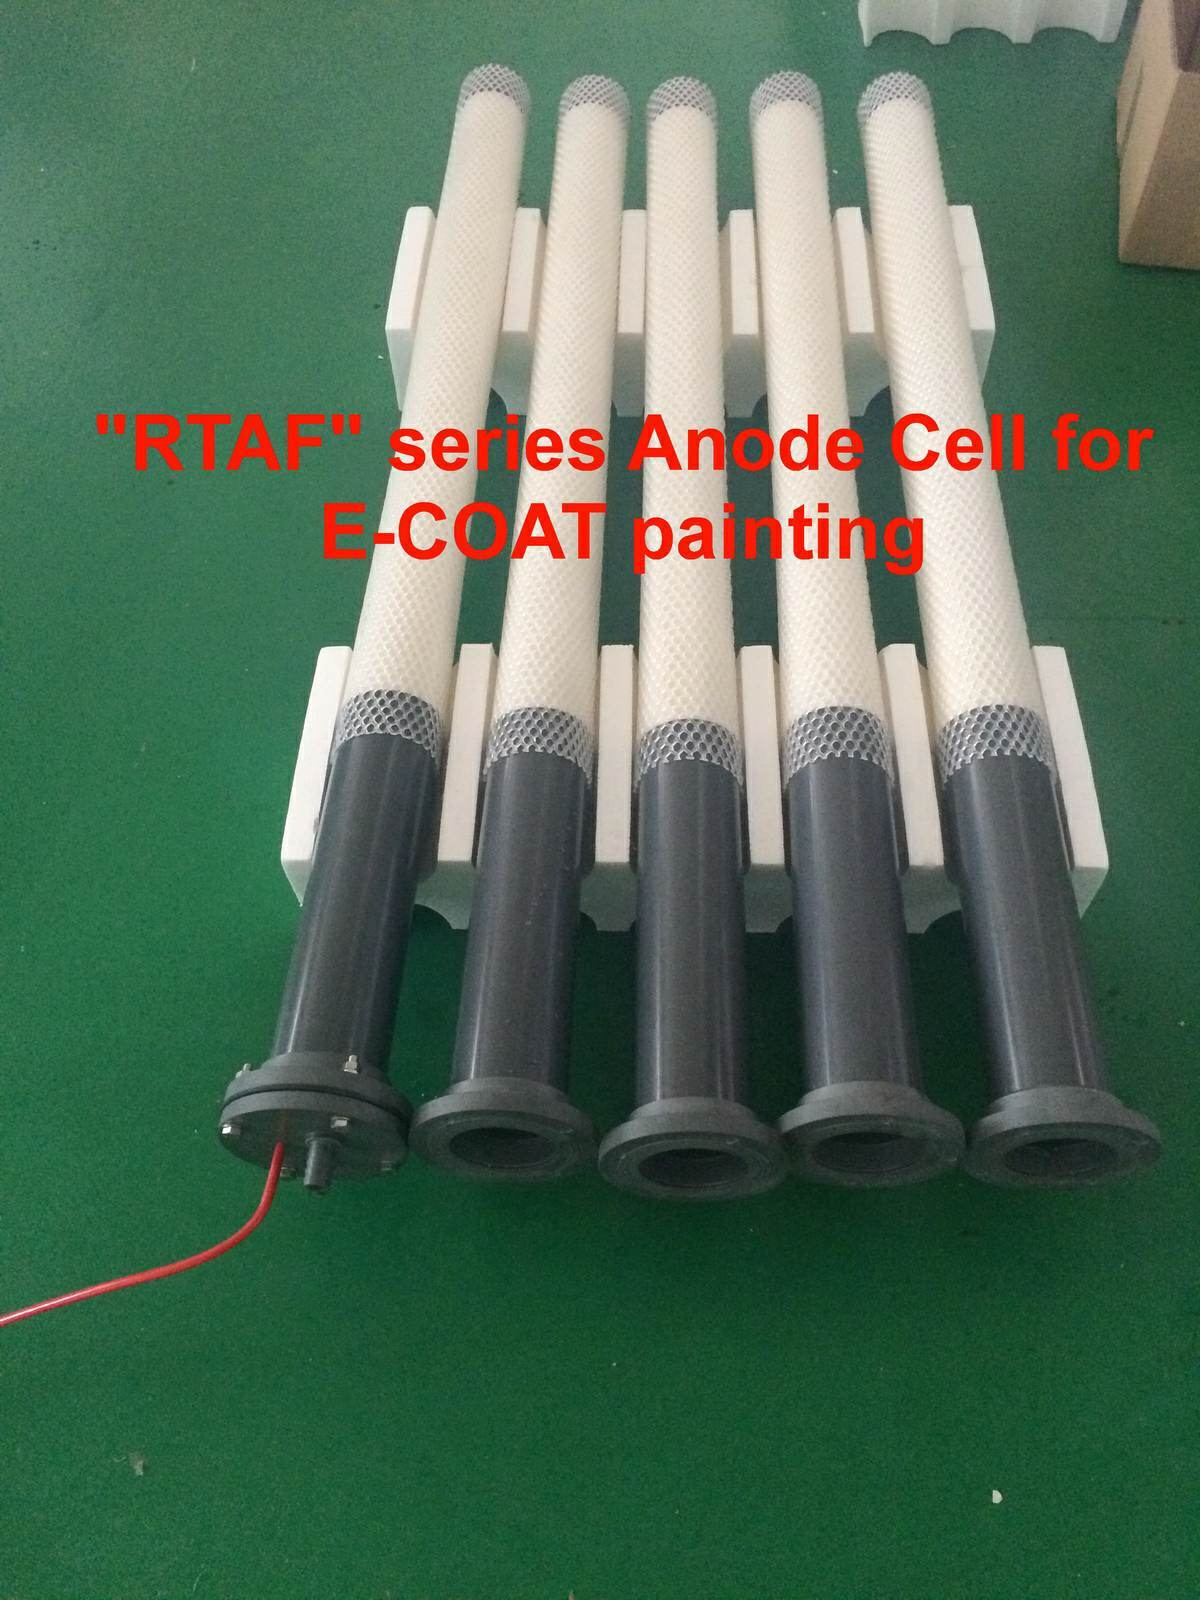 Pressurized Type Anode Cells